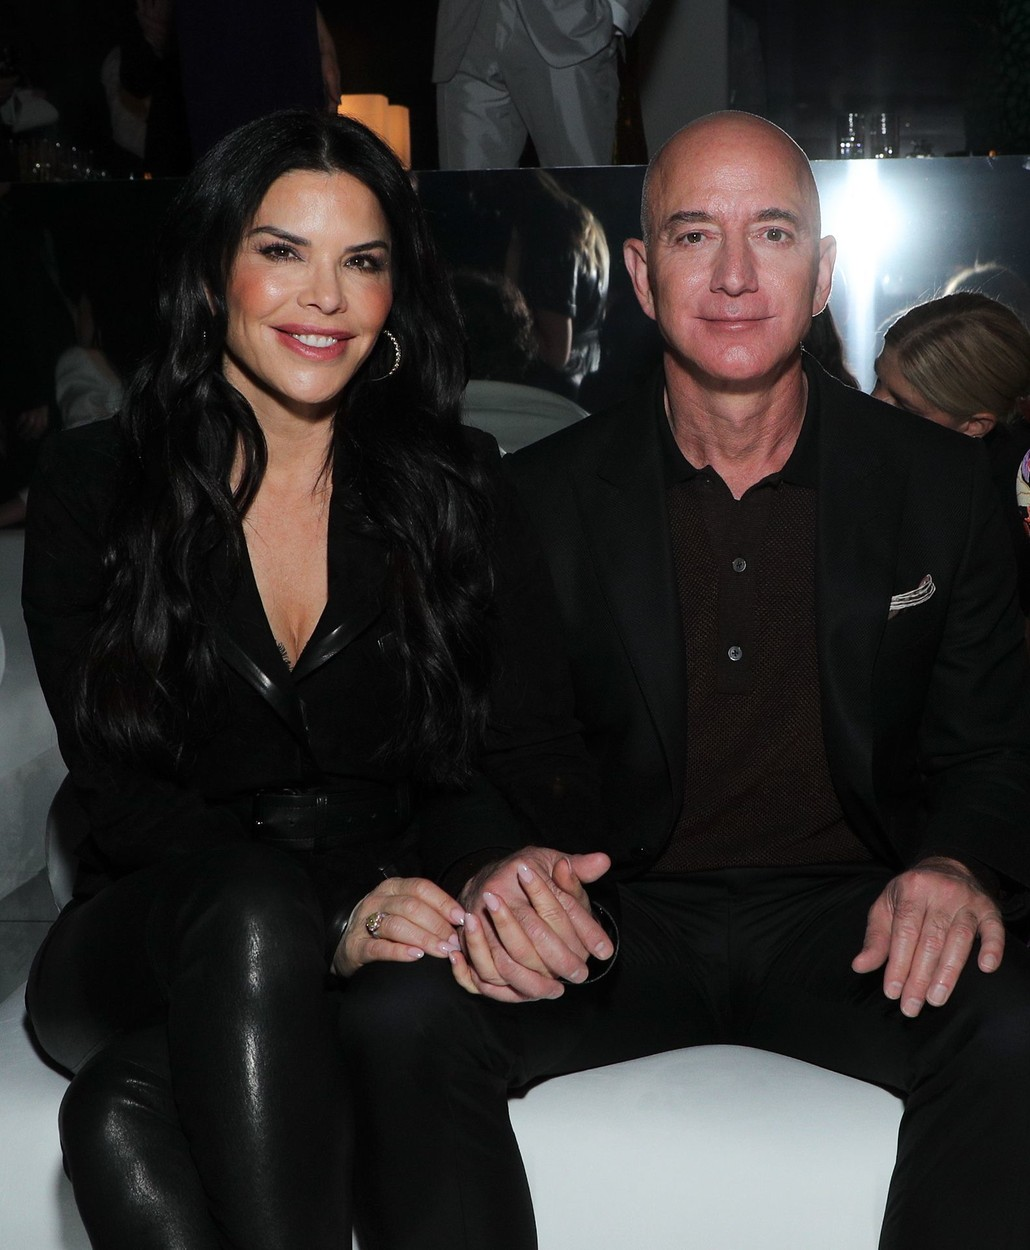 Lauren Sanchez and Jeff Bezos in the front row Tom Ford show, Front Row, Fall Winter 2020, Milk Studios, Los Angeles, USA - 07 Feb 2020, Image: 497105888, License: Rights-managed, Restrictions: , Model Release: no, Credit line: John Salangsang/WWD / Shutterstock Editorial / Profimedia